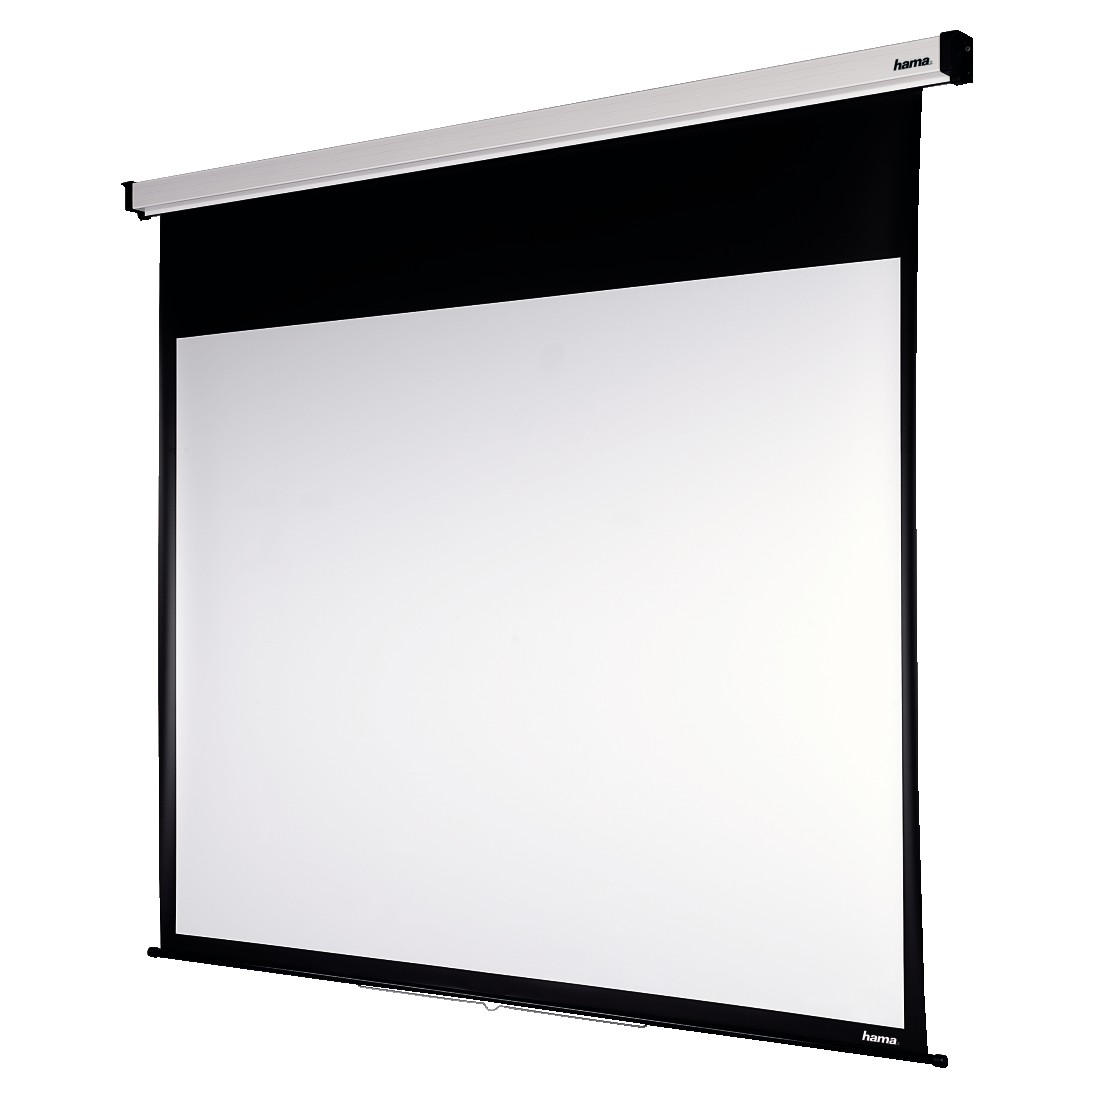 abx3 High-Res Image 3 - Hama, Roller Projection Screen, 180 x 160 cm, 4:3